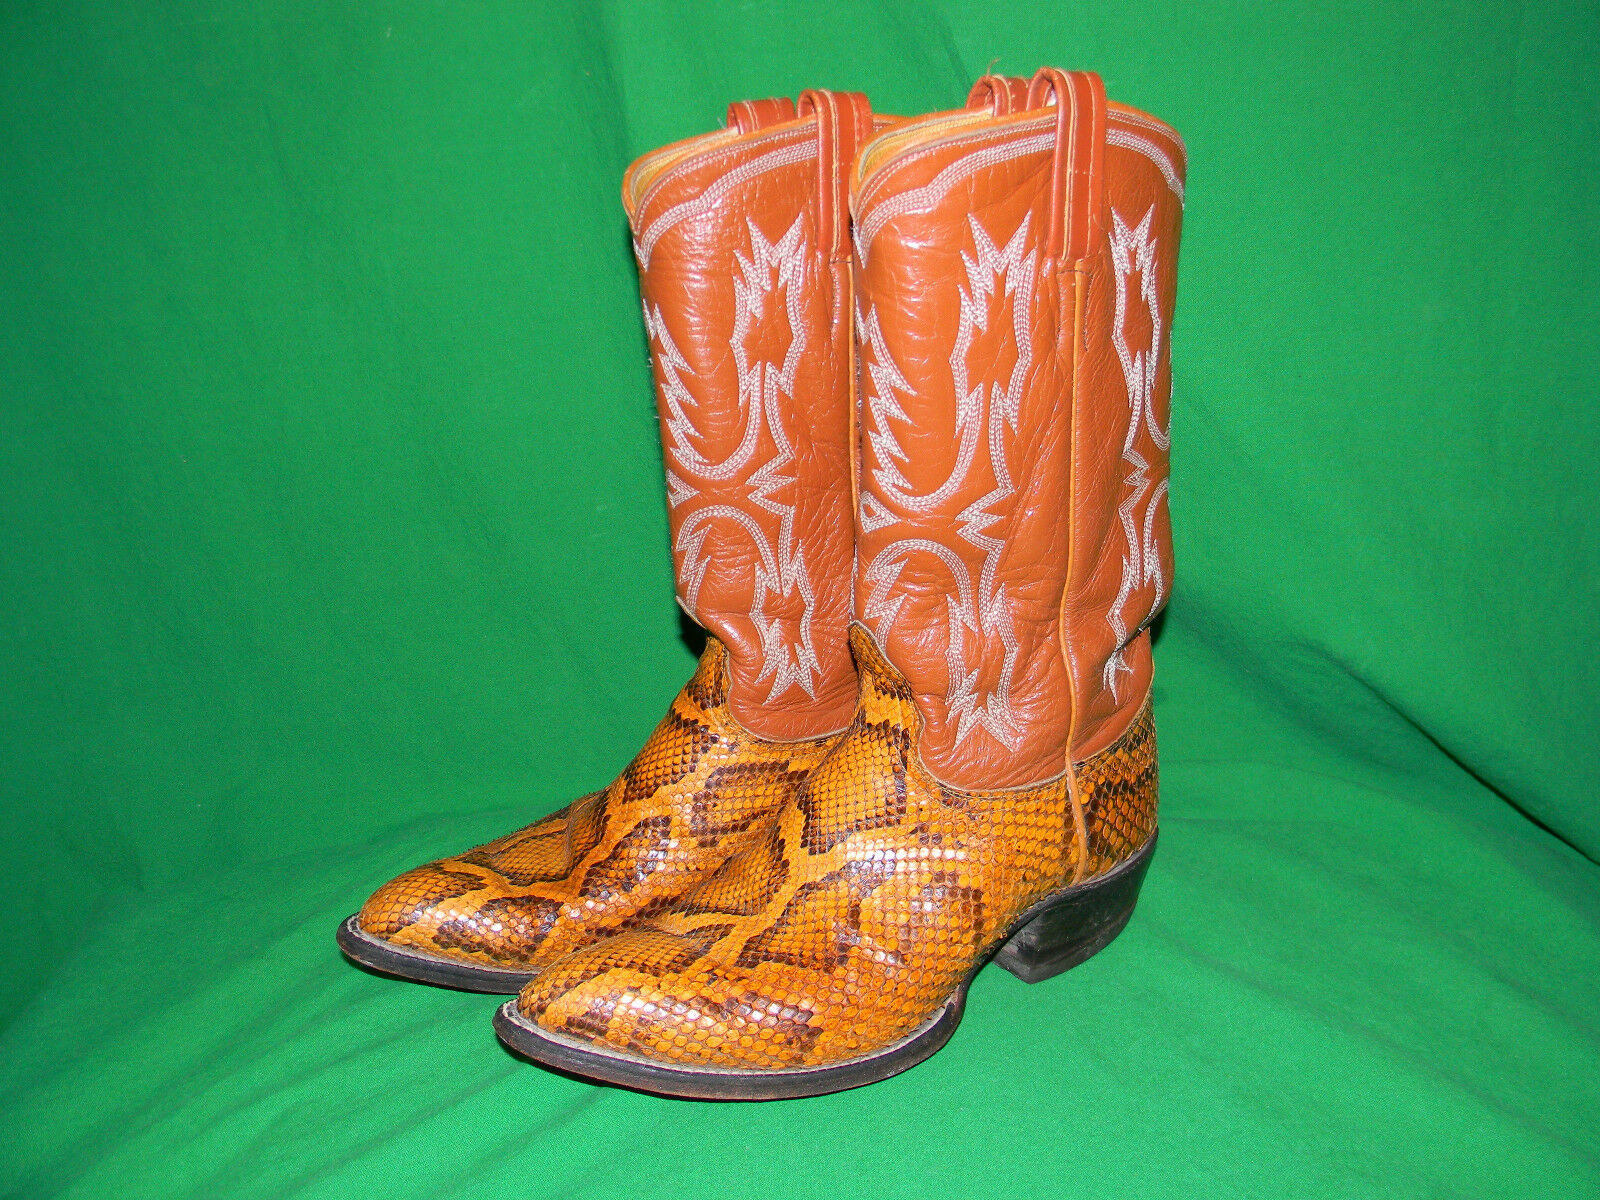 ROY ROGERS BOOTS 6 D WESTERN BOOTS 6 D SQUARE TOE BOOTS 6 WESTERN BOOTS 6 BOOTS